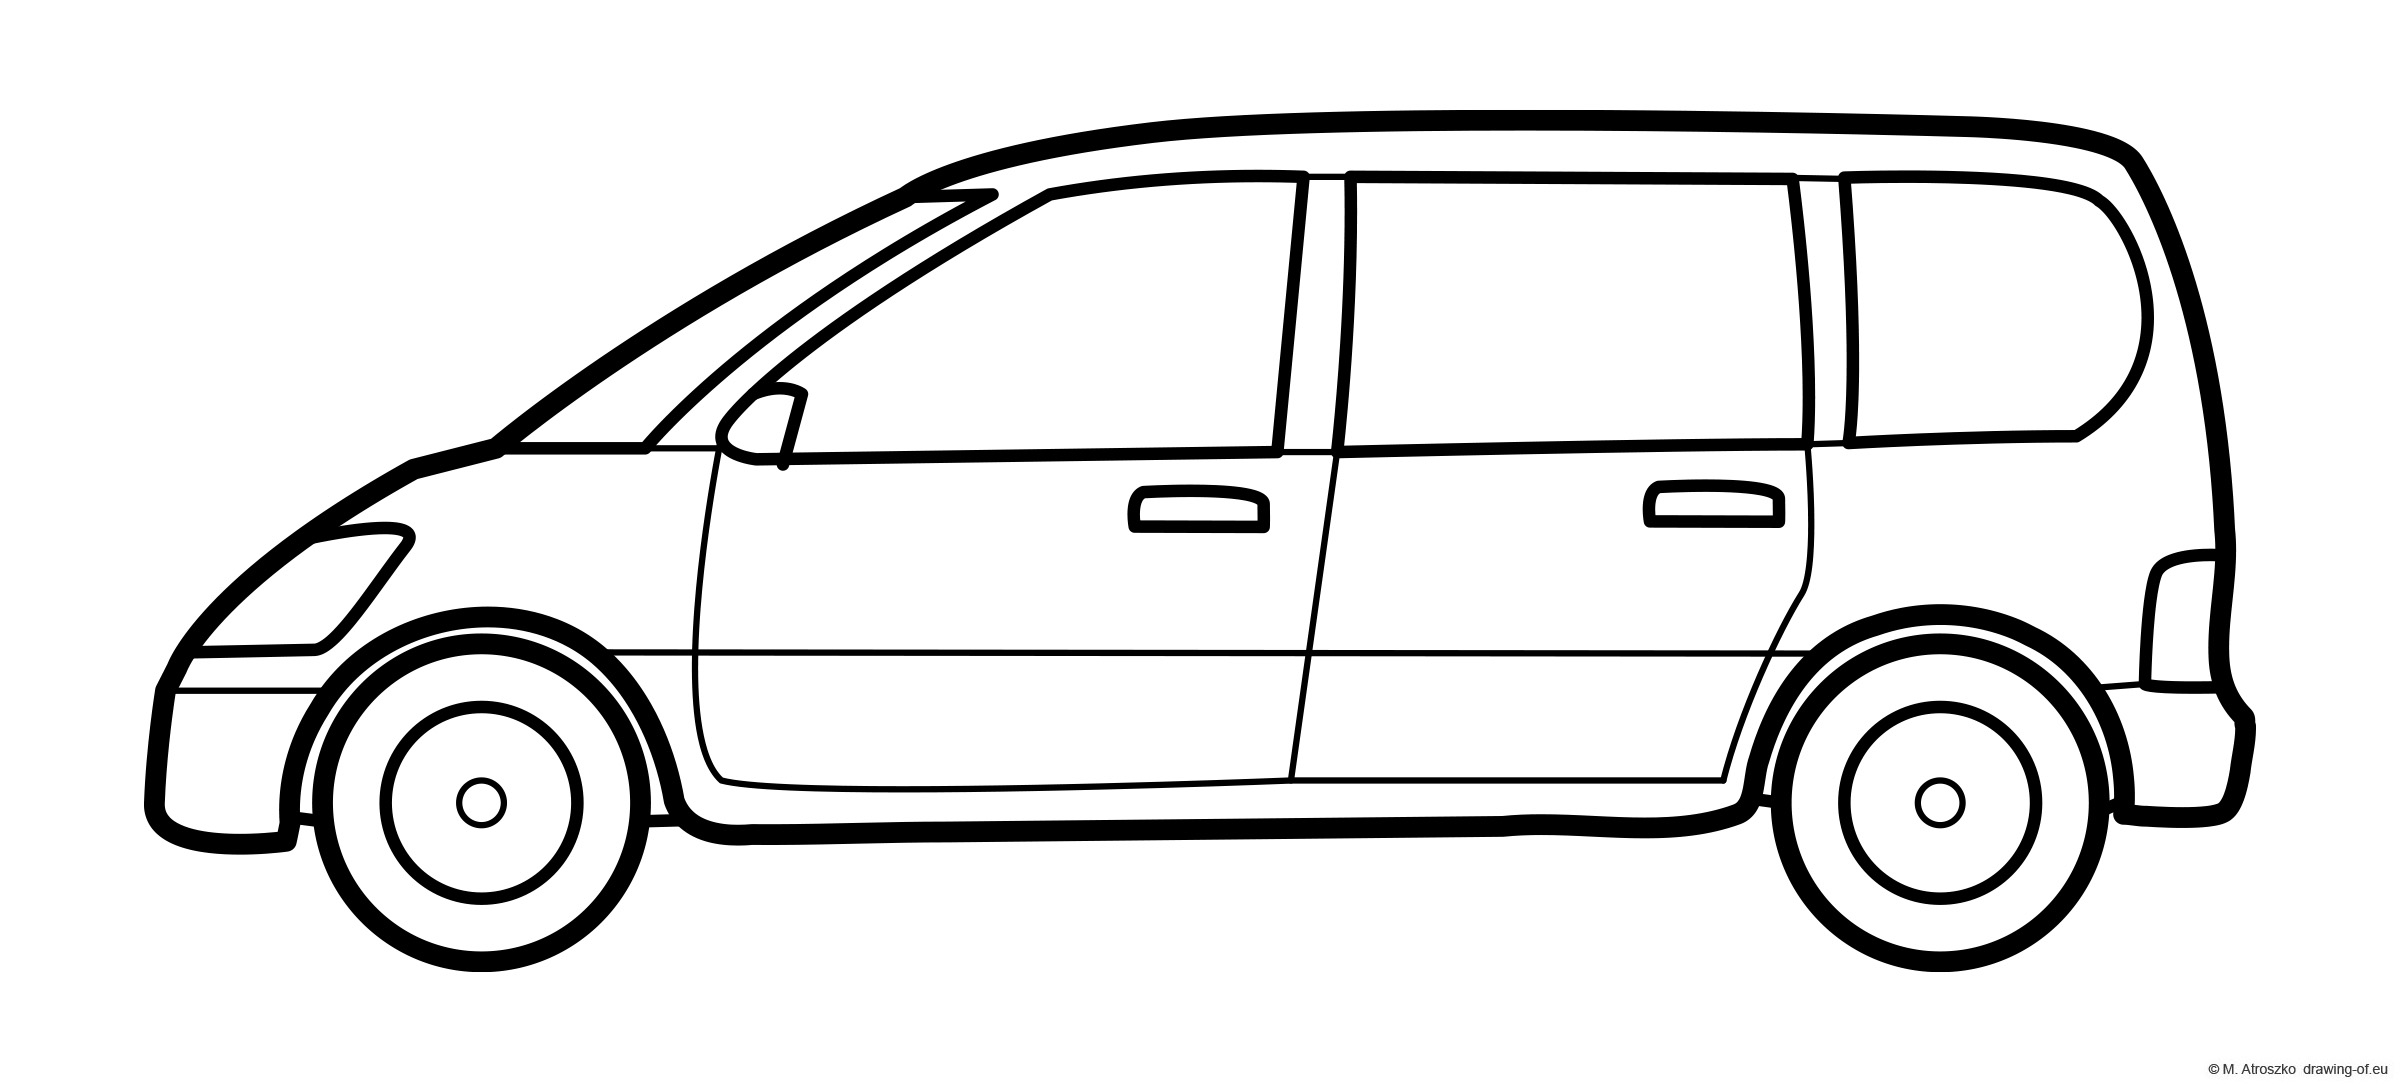 Family car coloring page